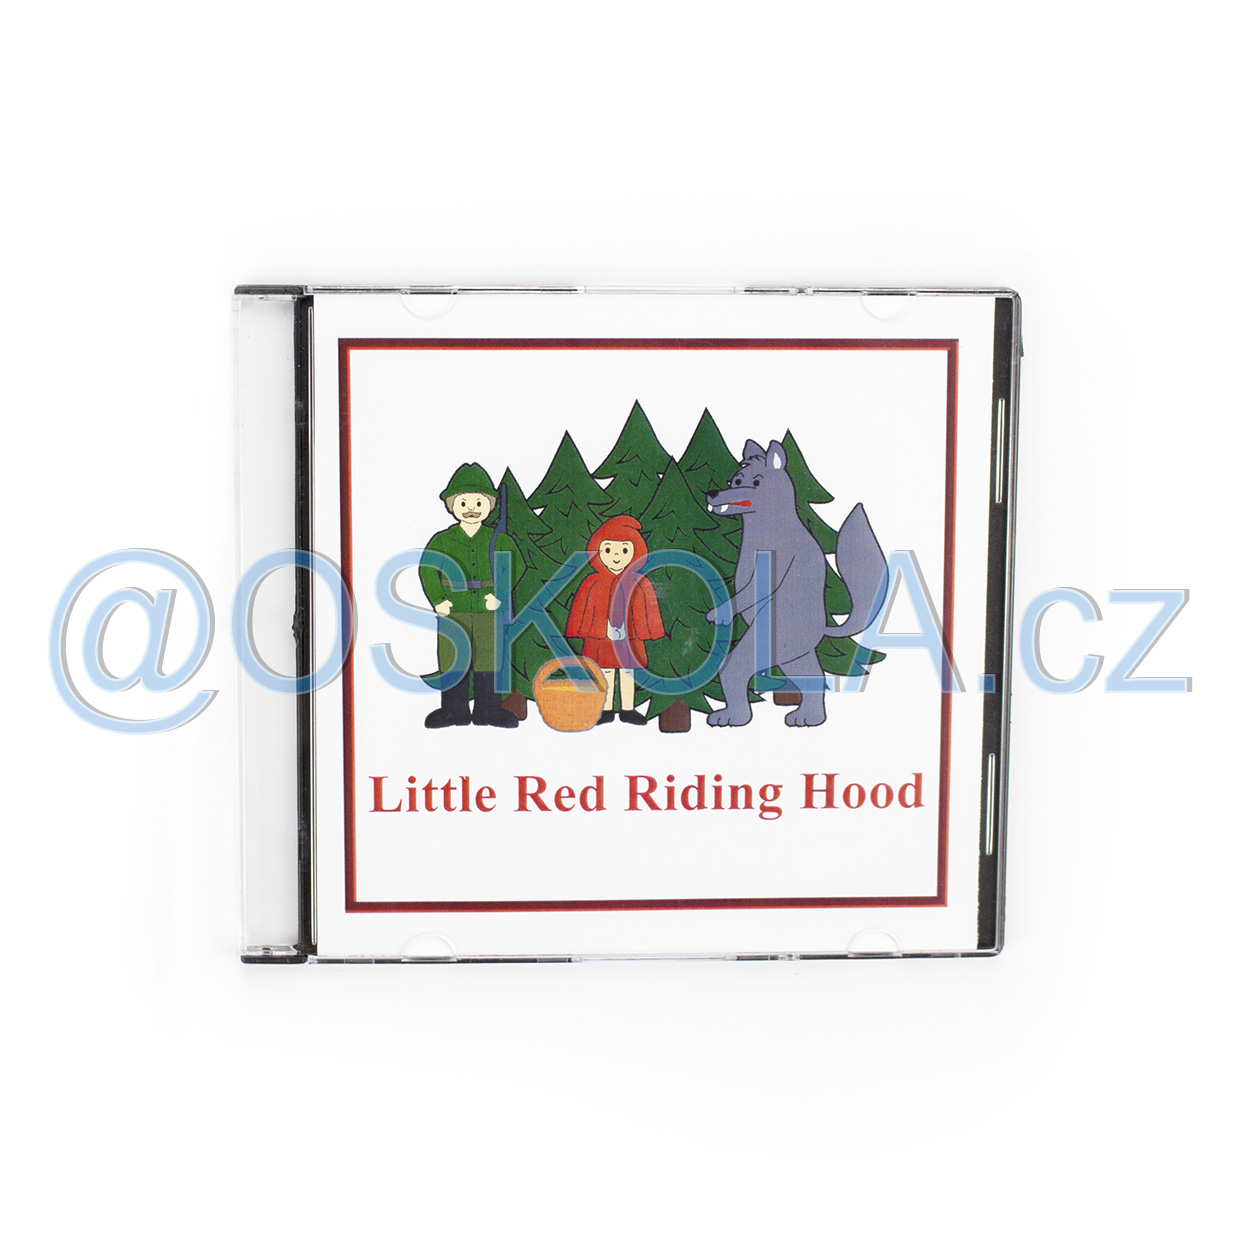 CD - Little Red Riding Hood (1 jazyk en)